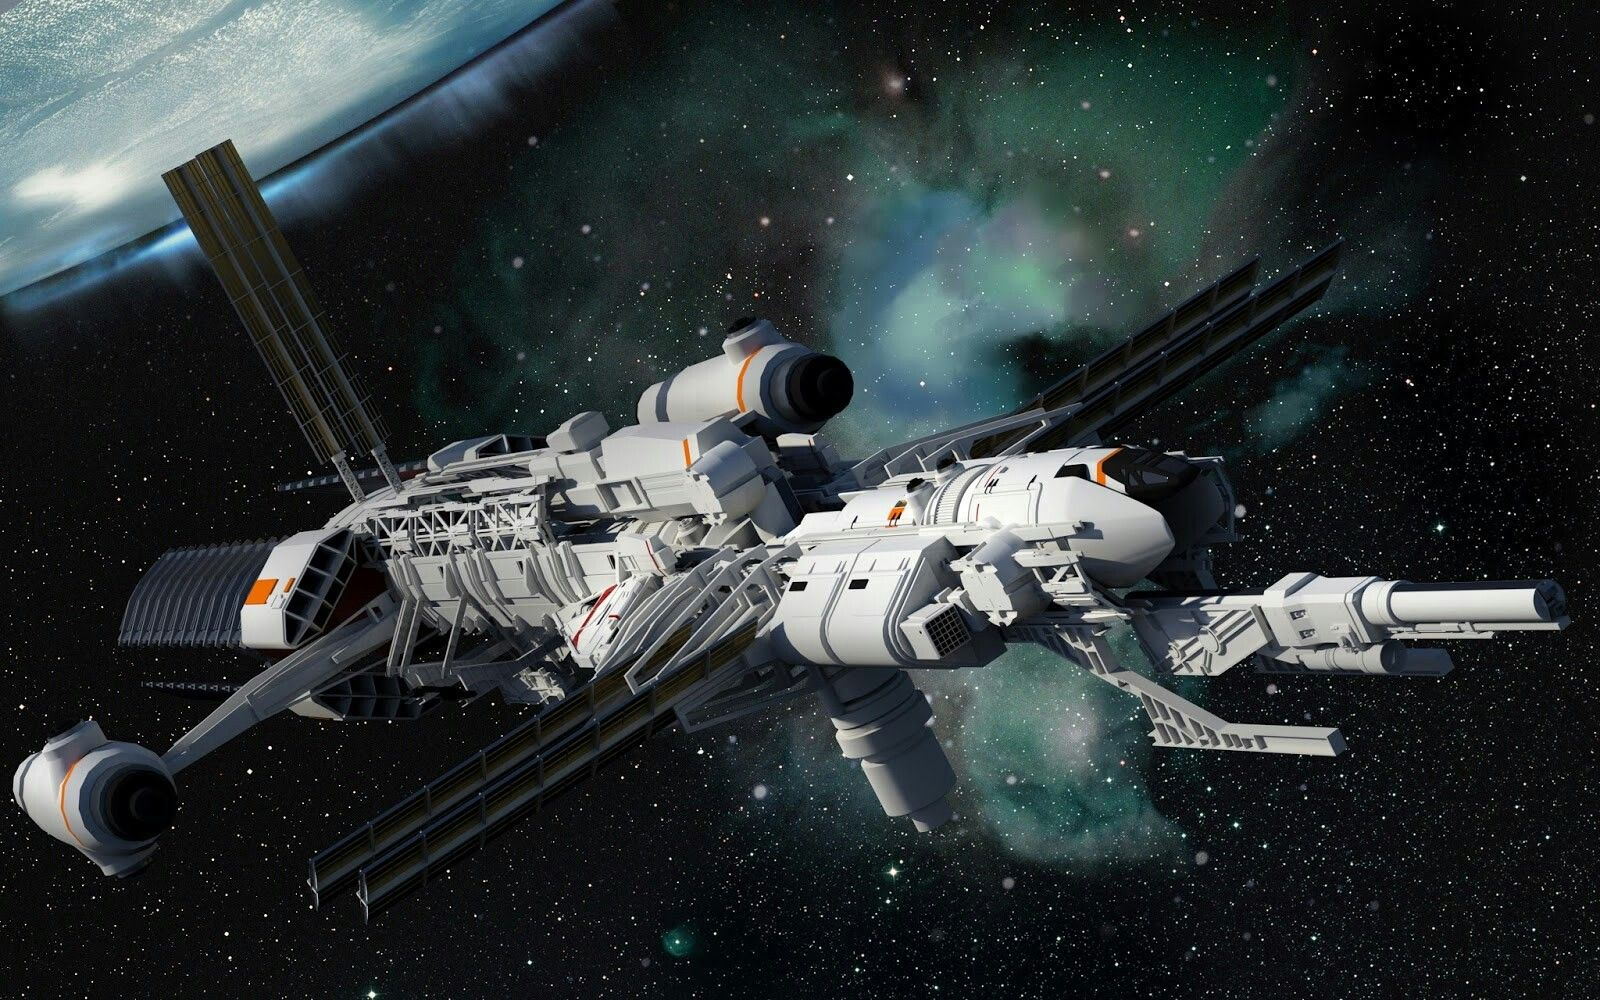 Pin by Daniel Audet on Ships of Space | Concept ships